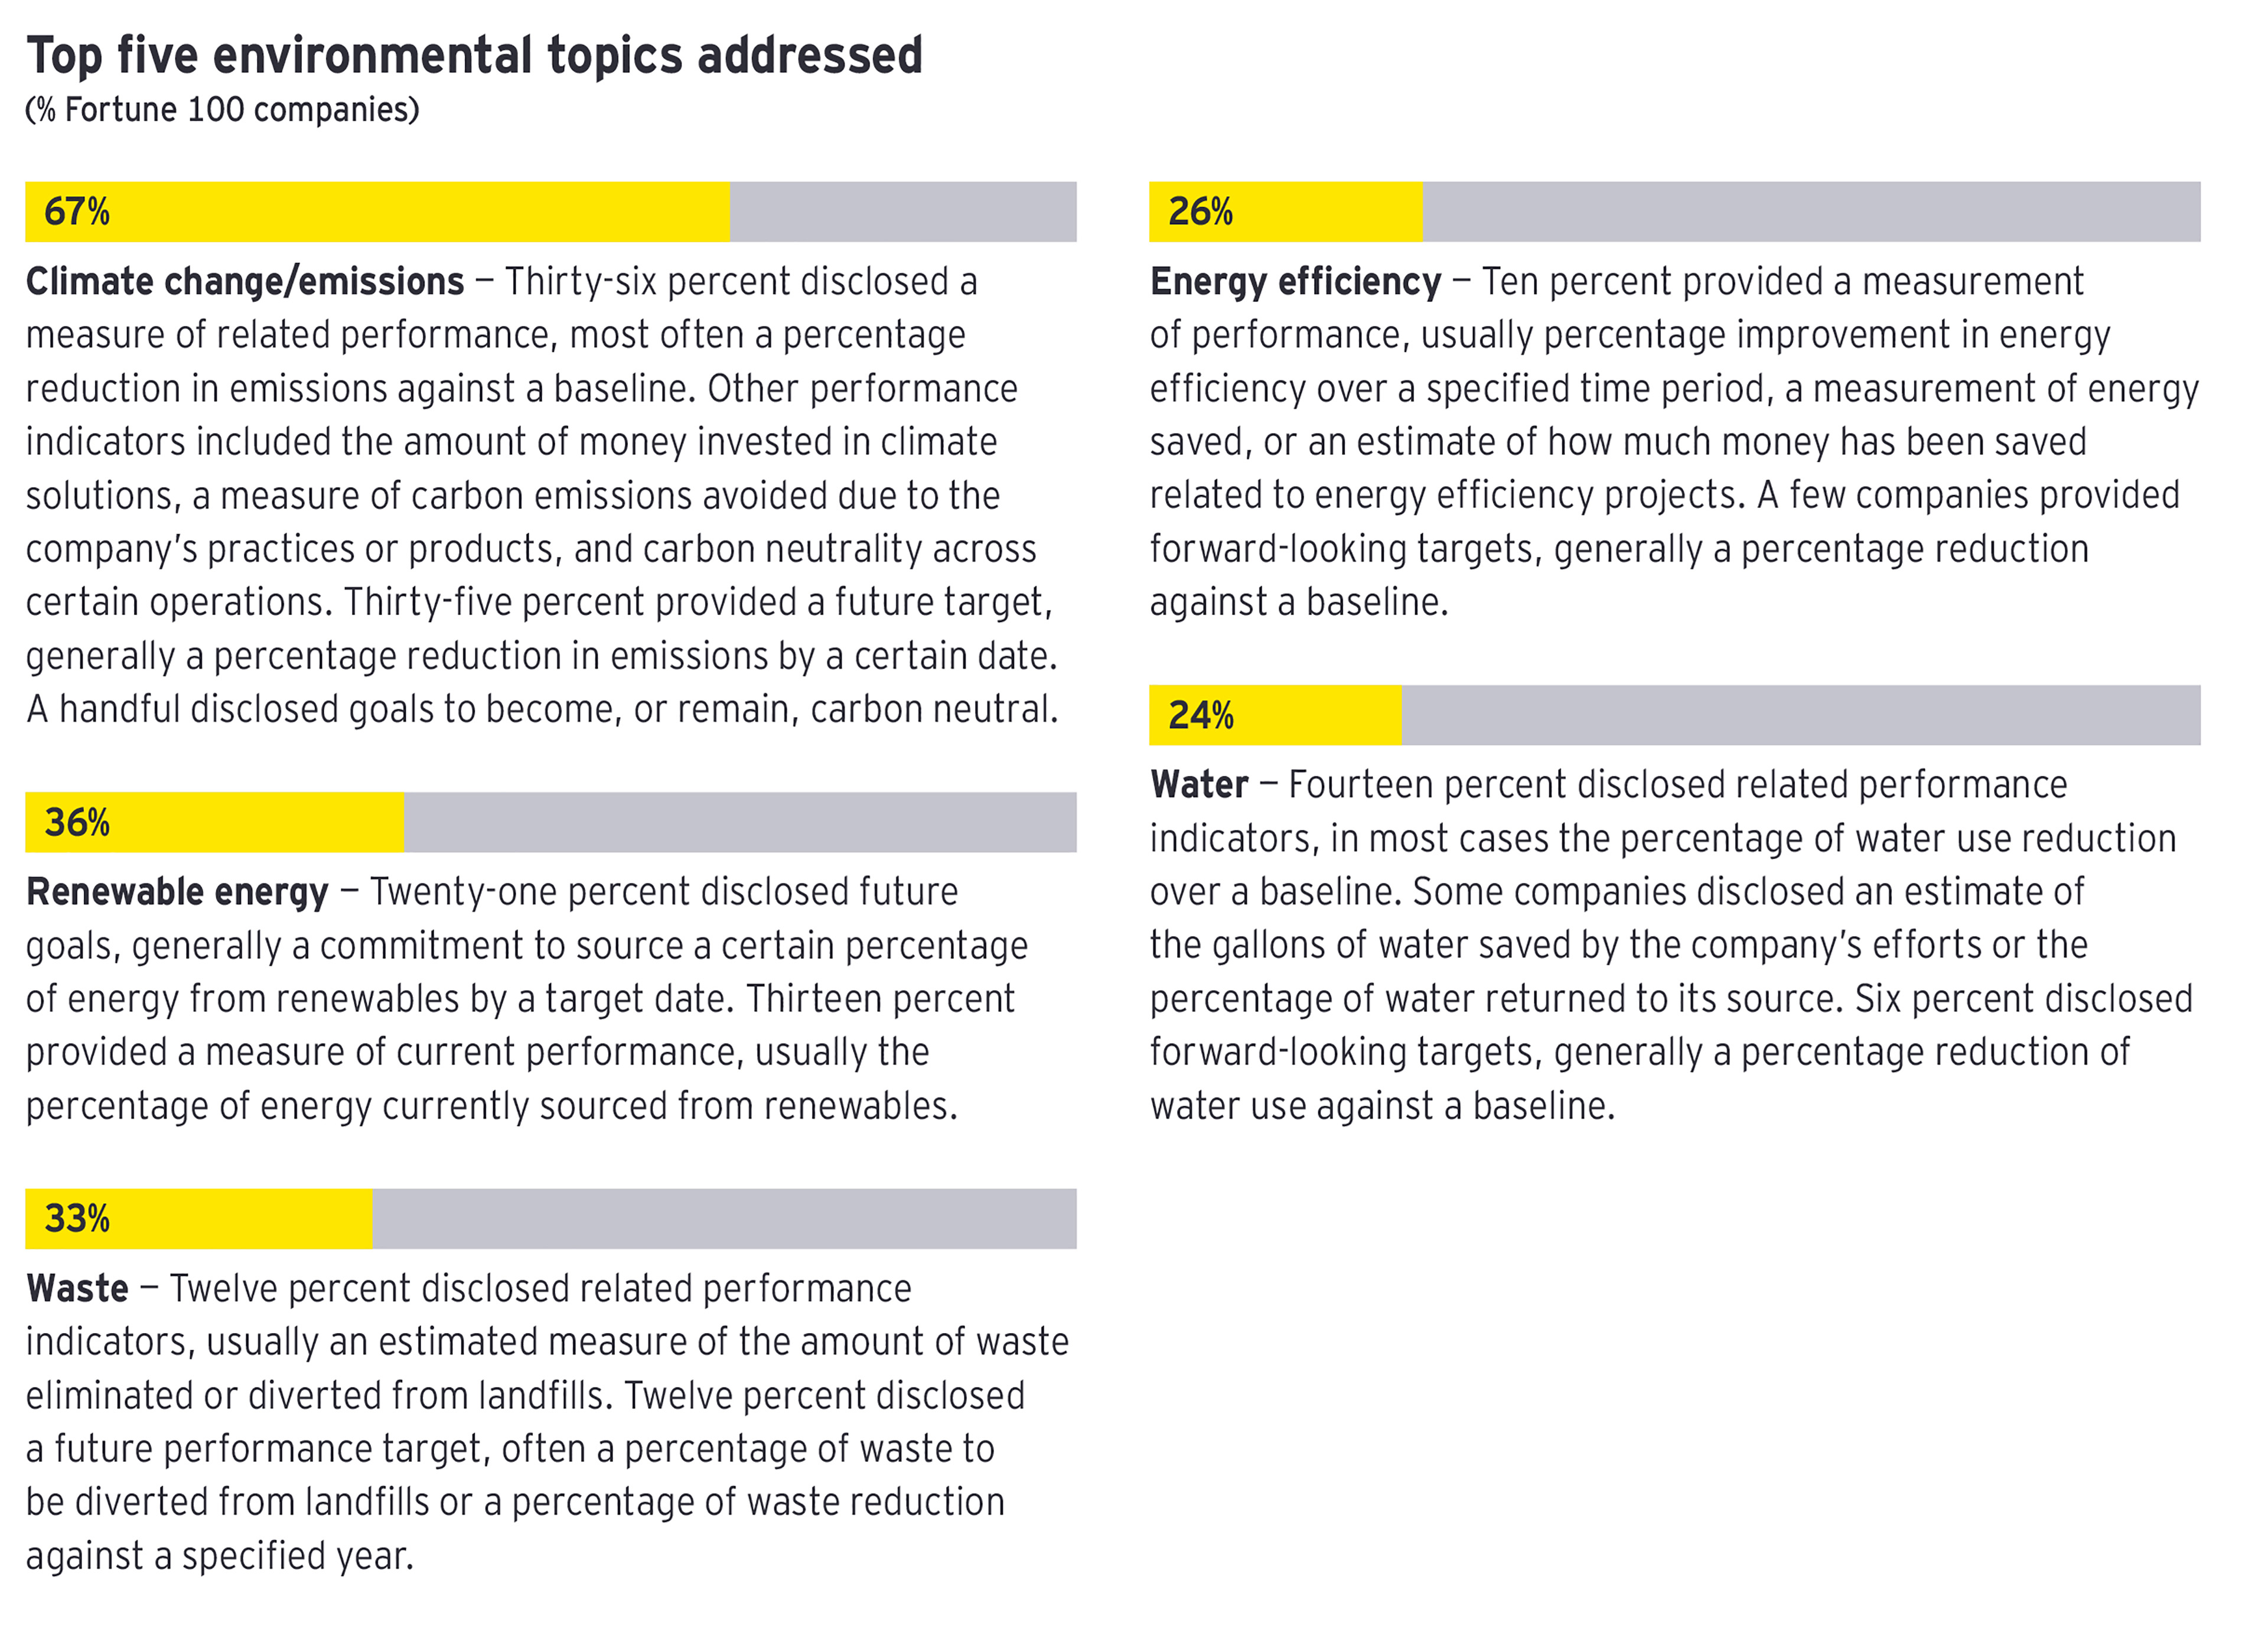 EY - Environmental topics addressed